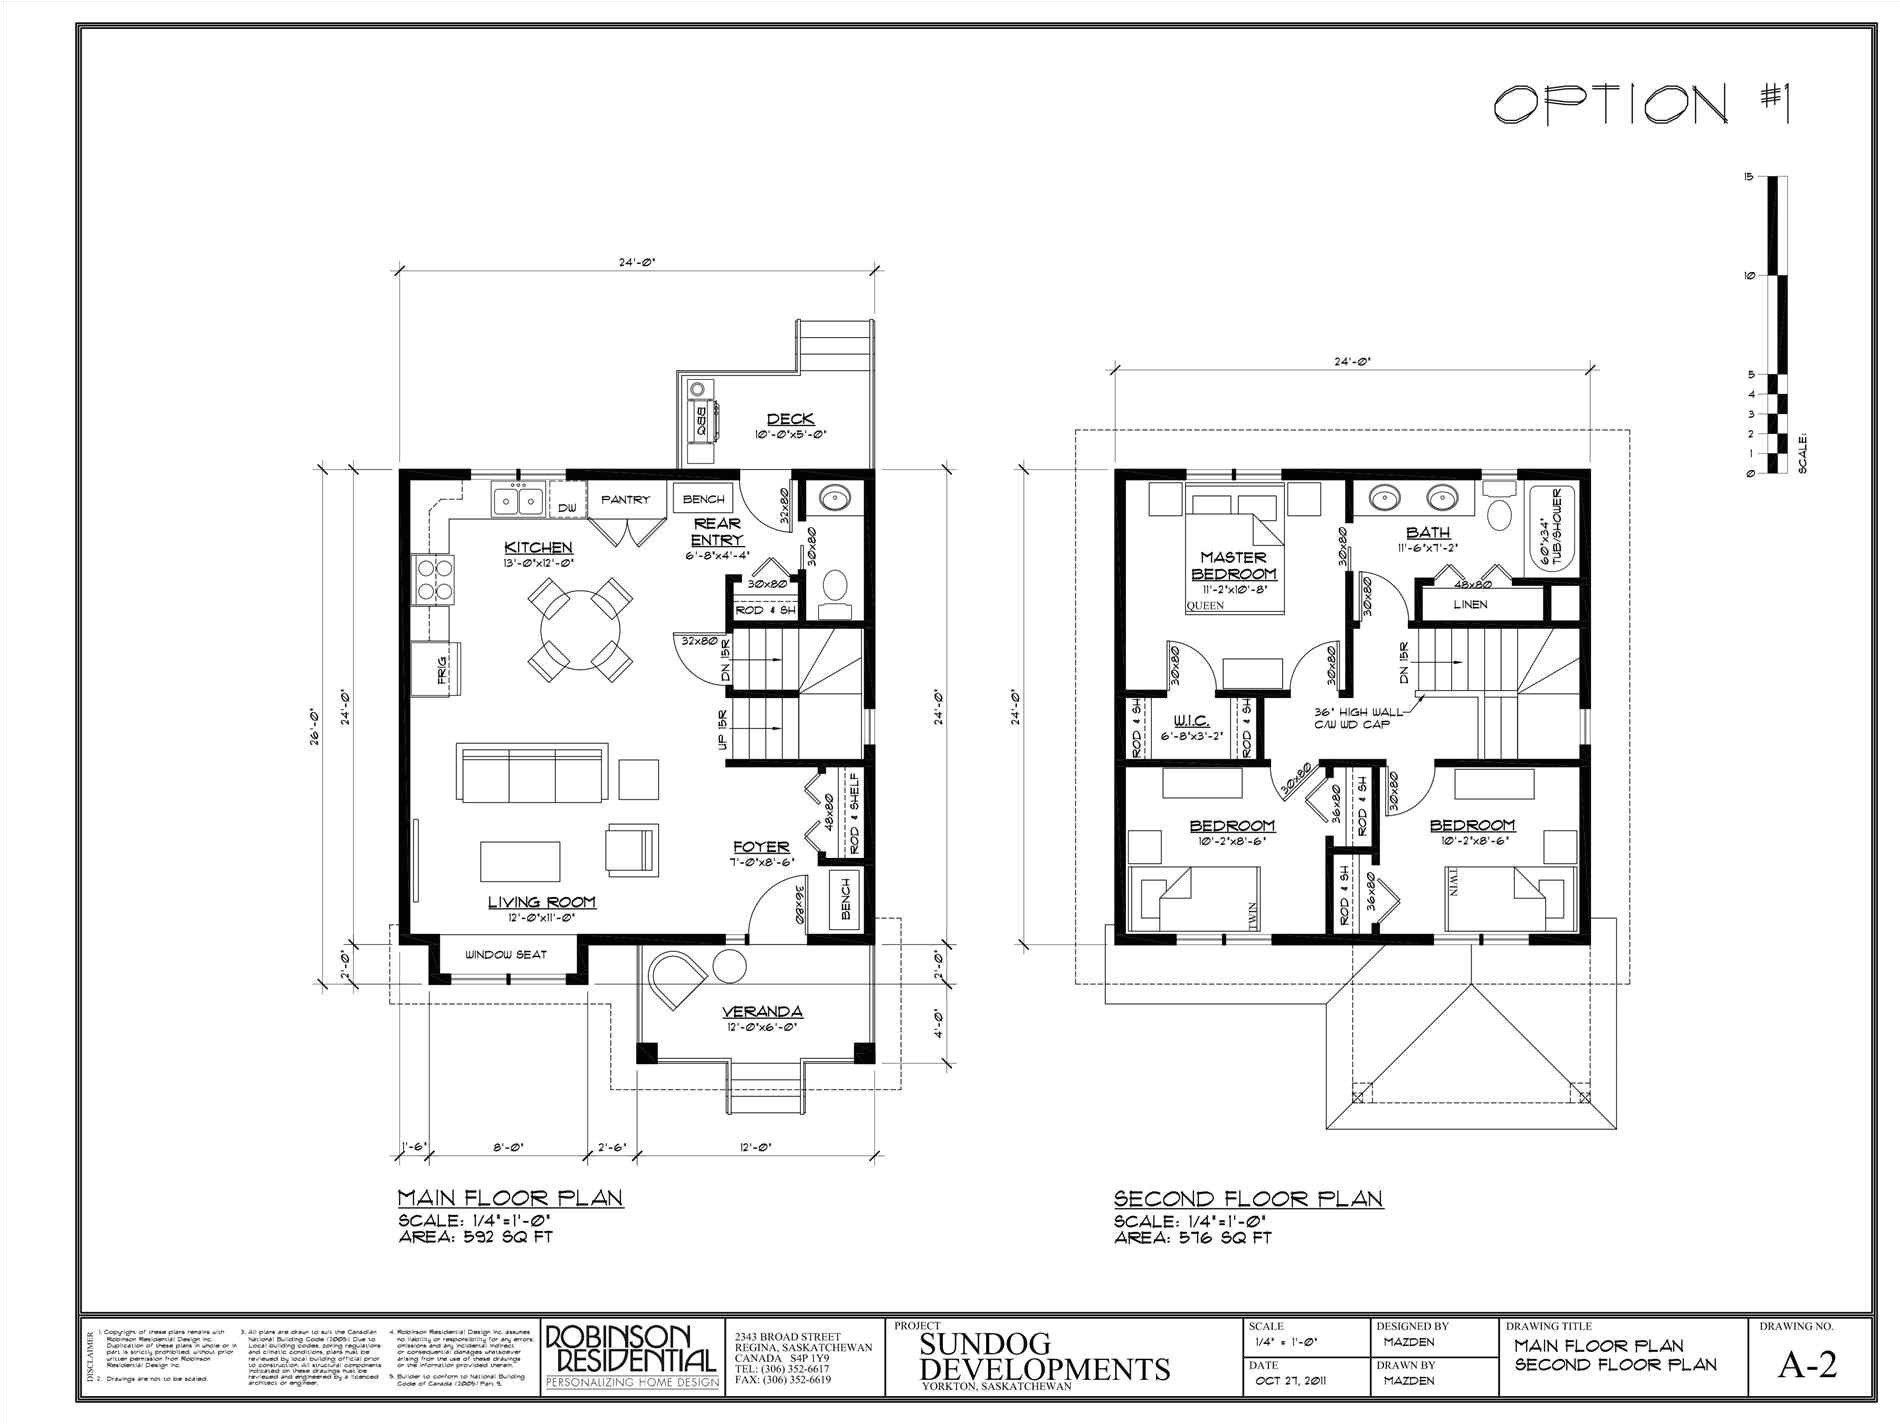 on pinterest sims best 2 storey house designs and floor plans ideas about two on pinterest sims thompson hill homes inc home